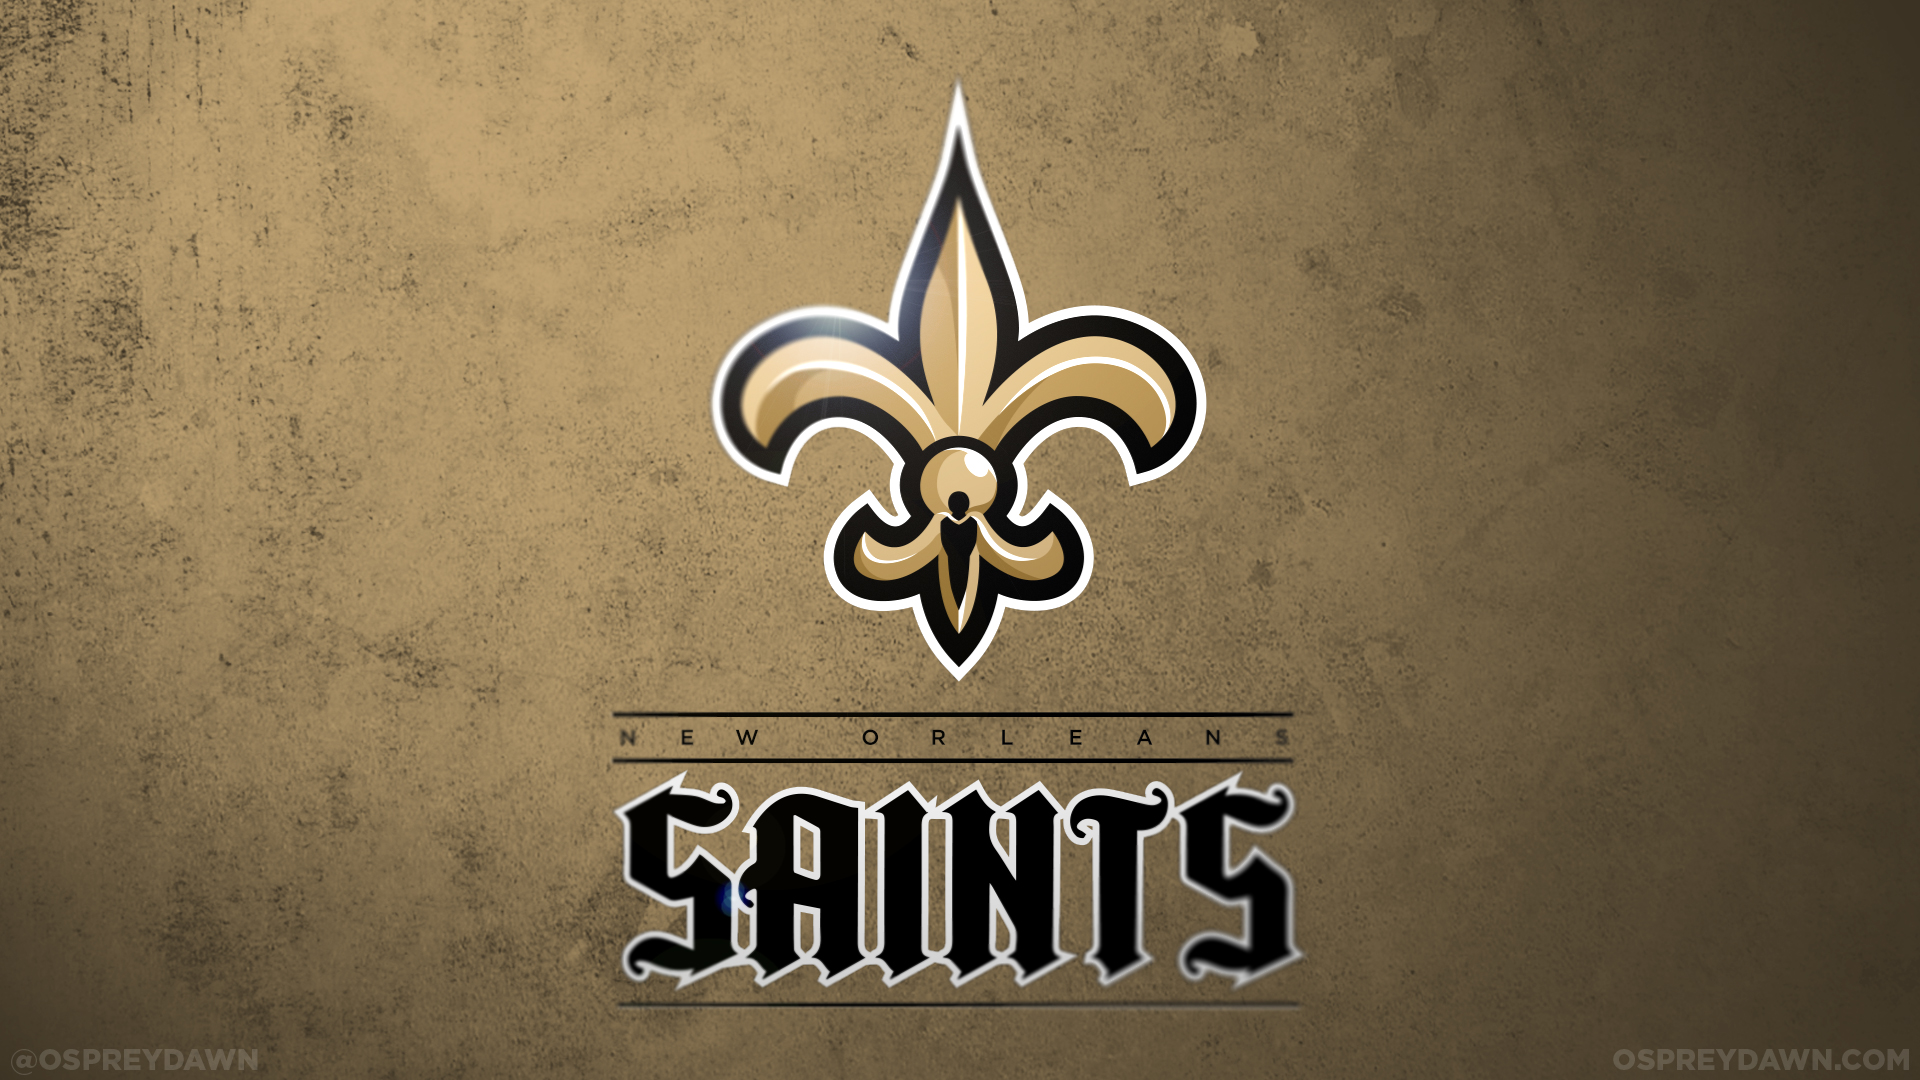 Free Download New Orleans Saints Wallpapers Hd Backgrounds